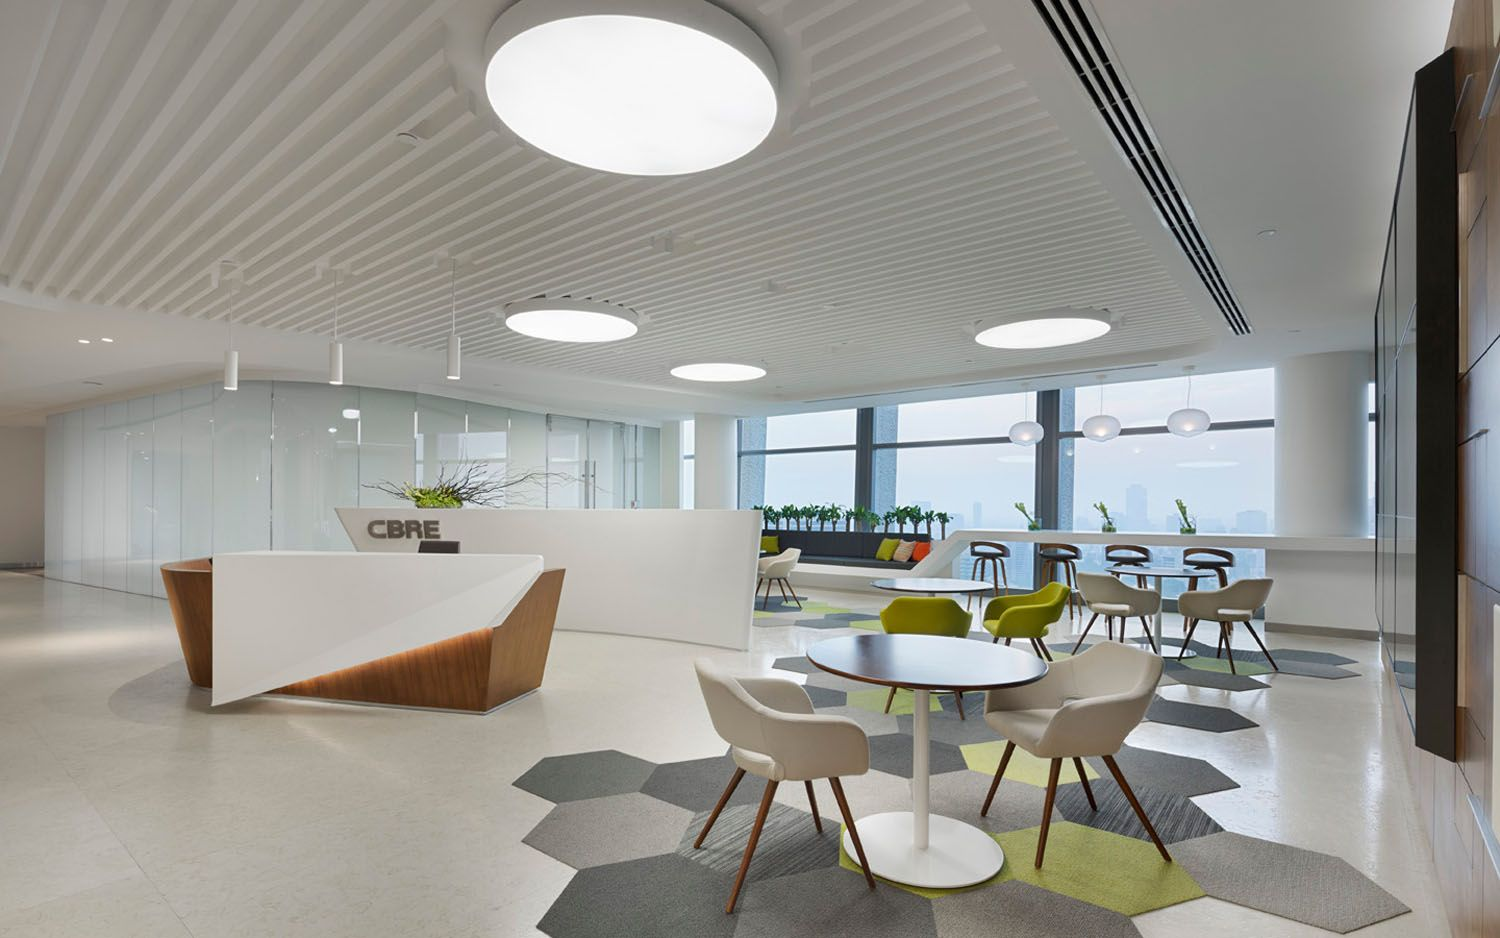 Cbre Corporate Offices Office Interior Design Corporate Office Office Design